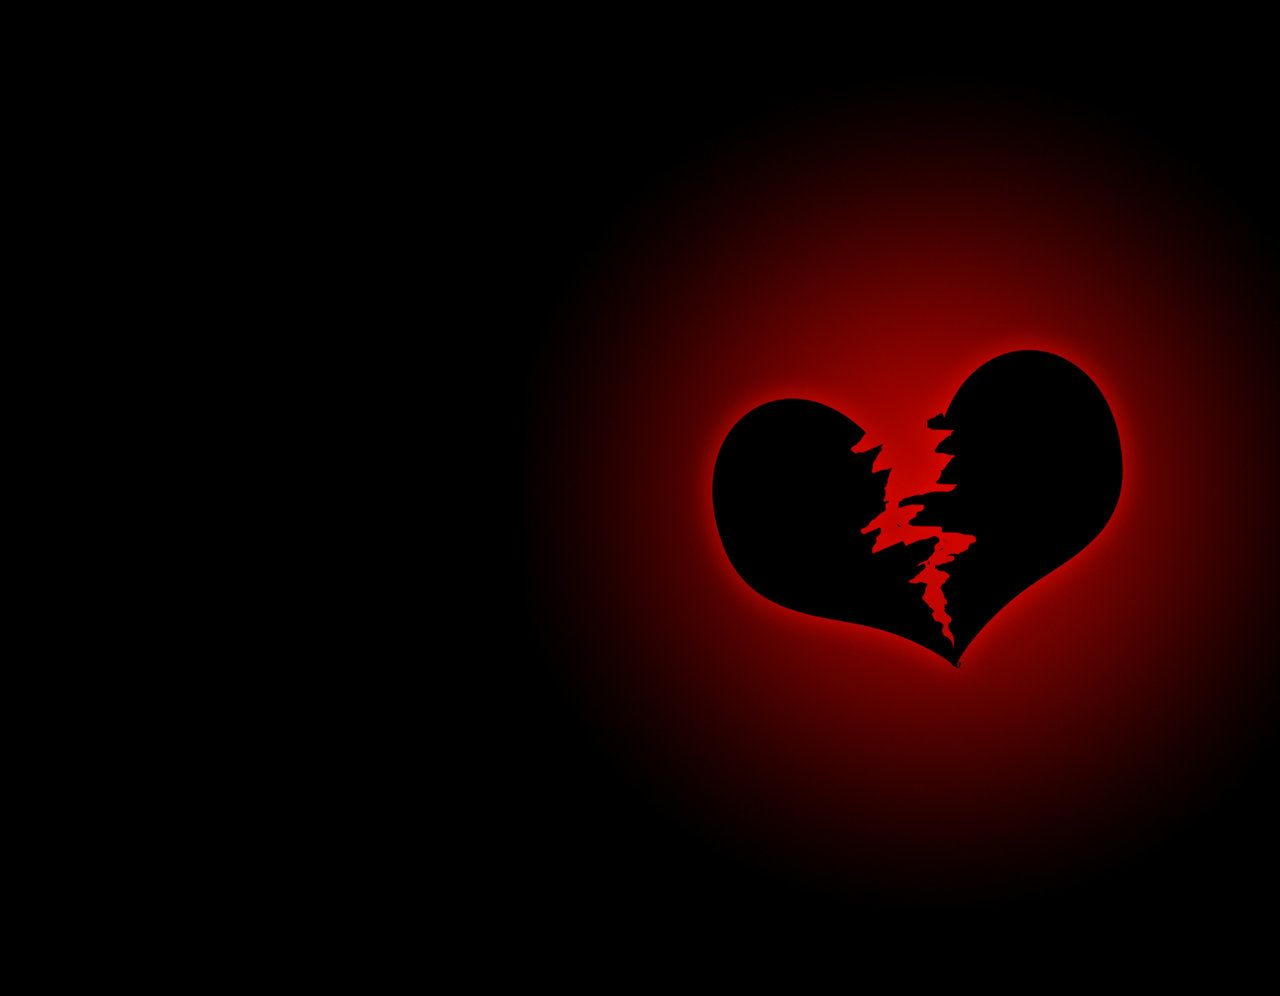 Broken hearts wallpaper 97985 at love wallpapers 1080p - Sad heart wallpapers love ...